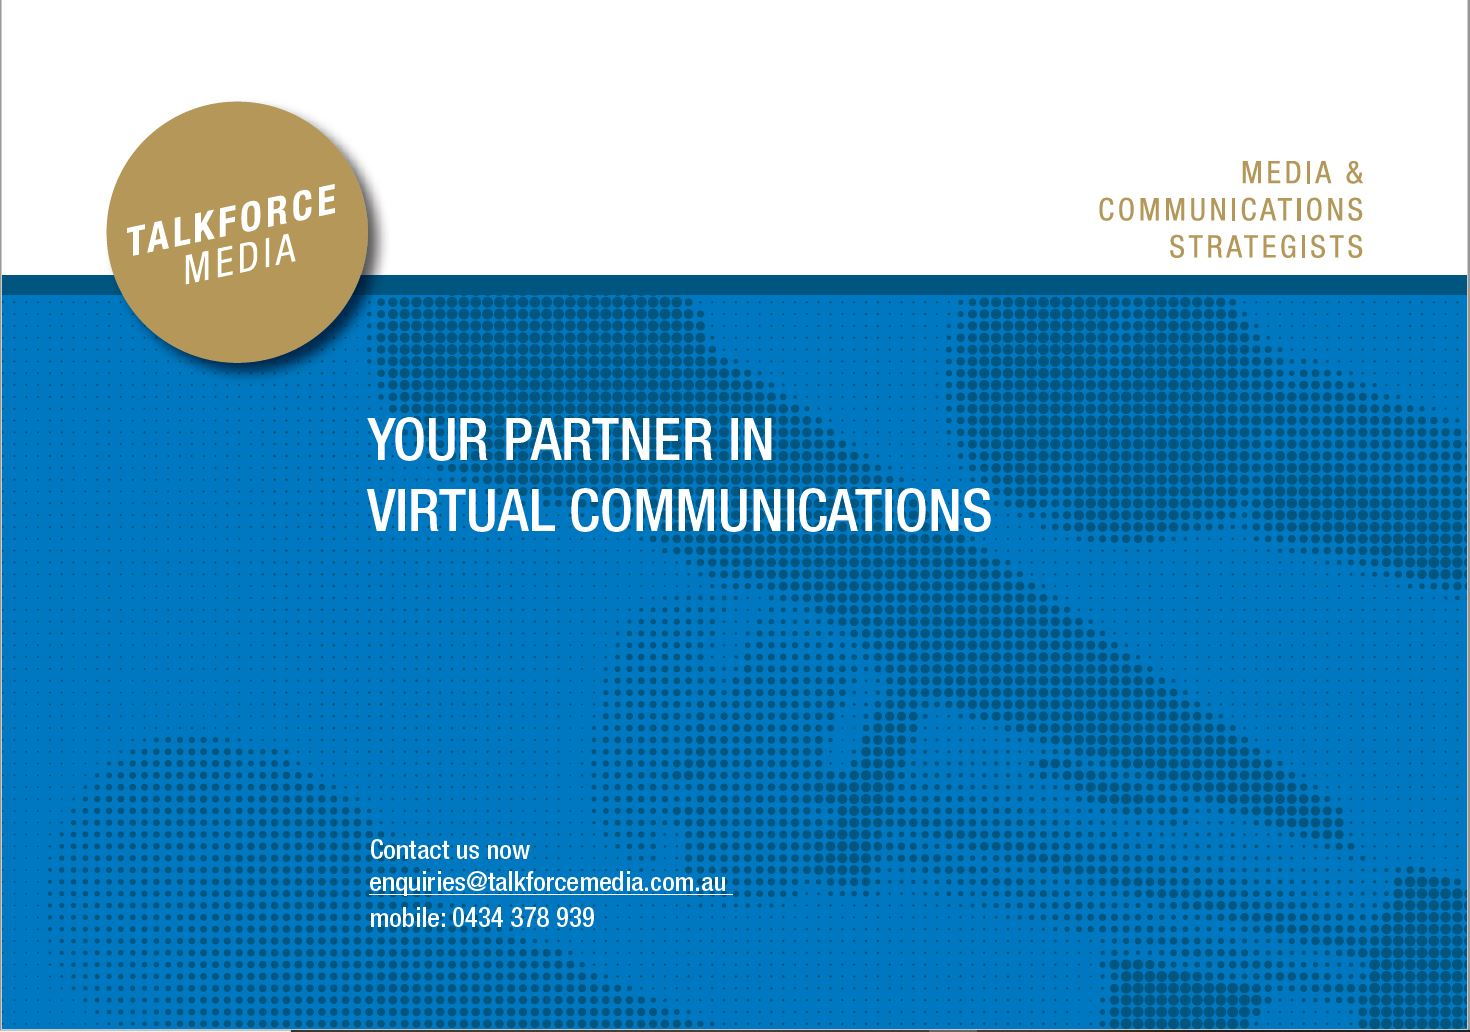 Your Partner in Virtual Communications